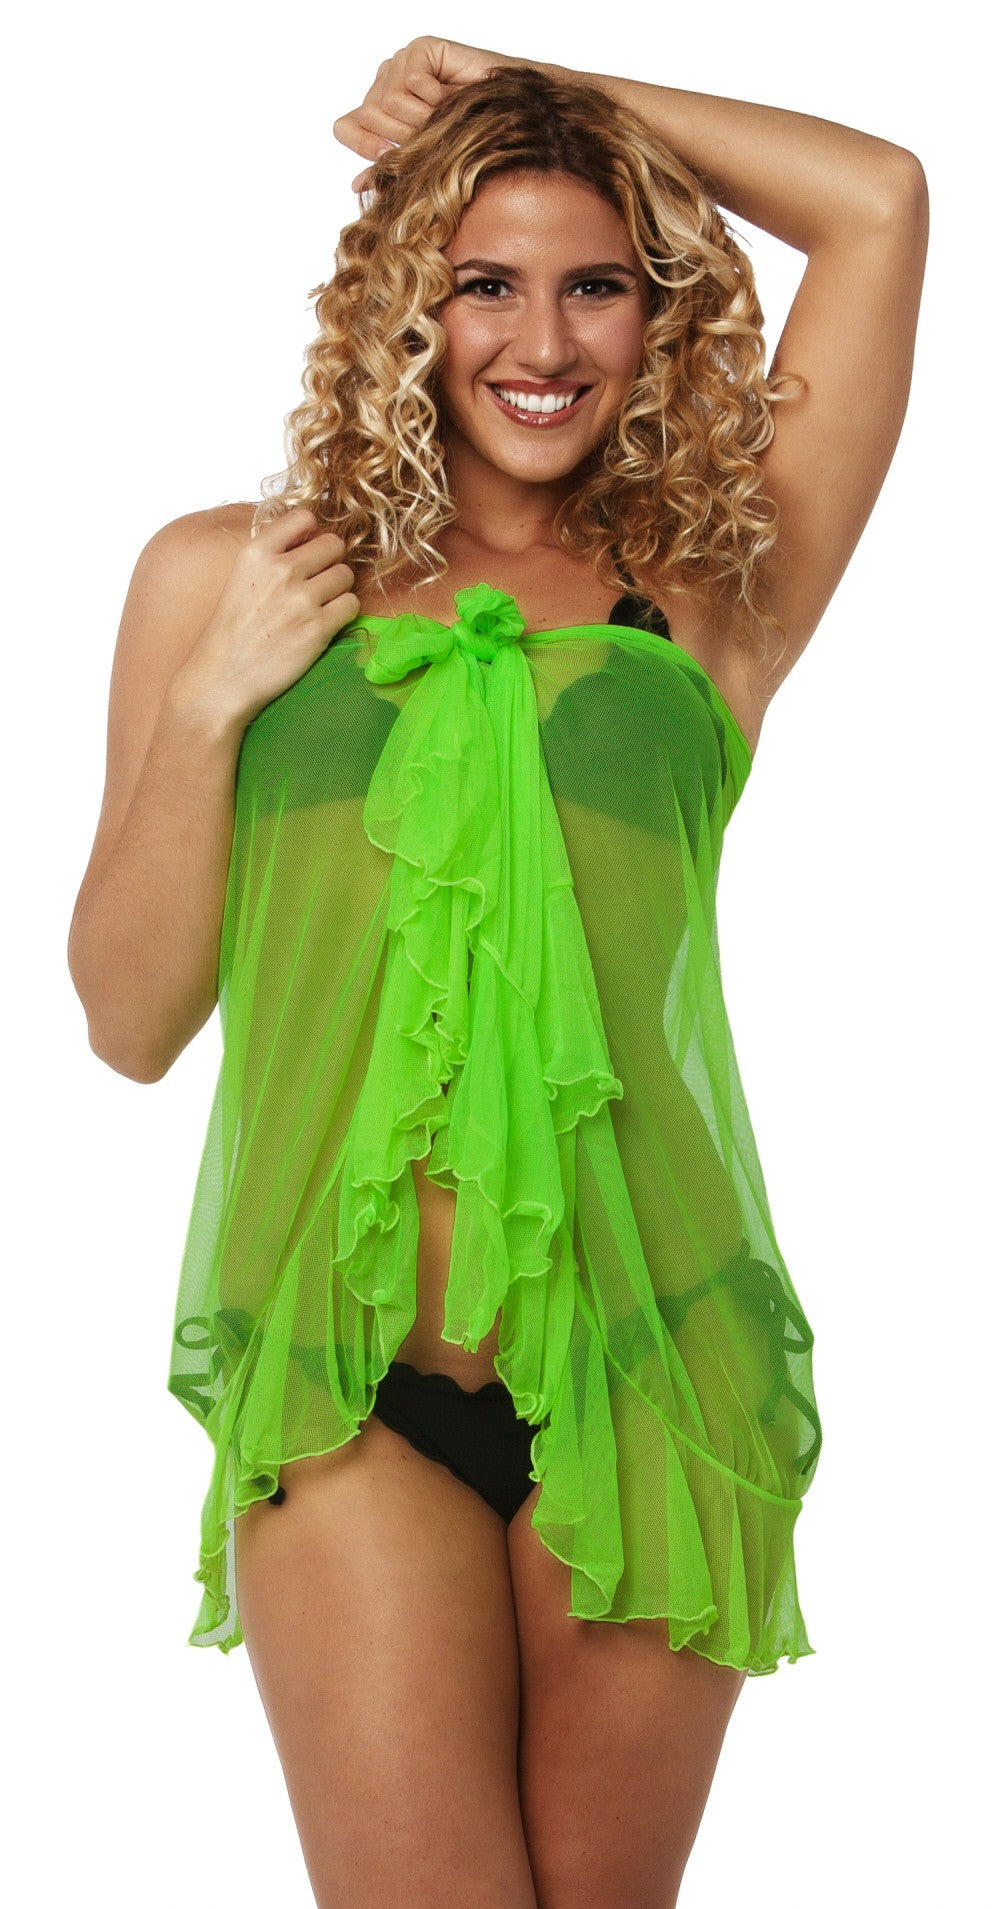 Flamenco - Neon Green Ultra Sheer Mesh Sarong